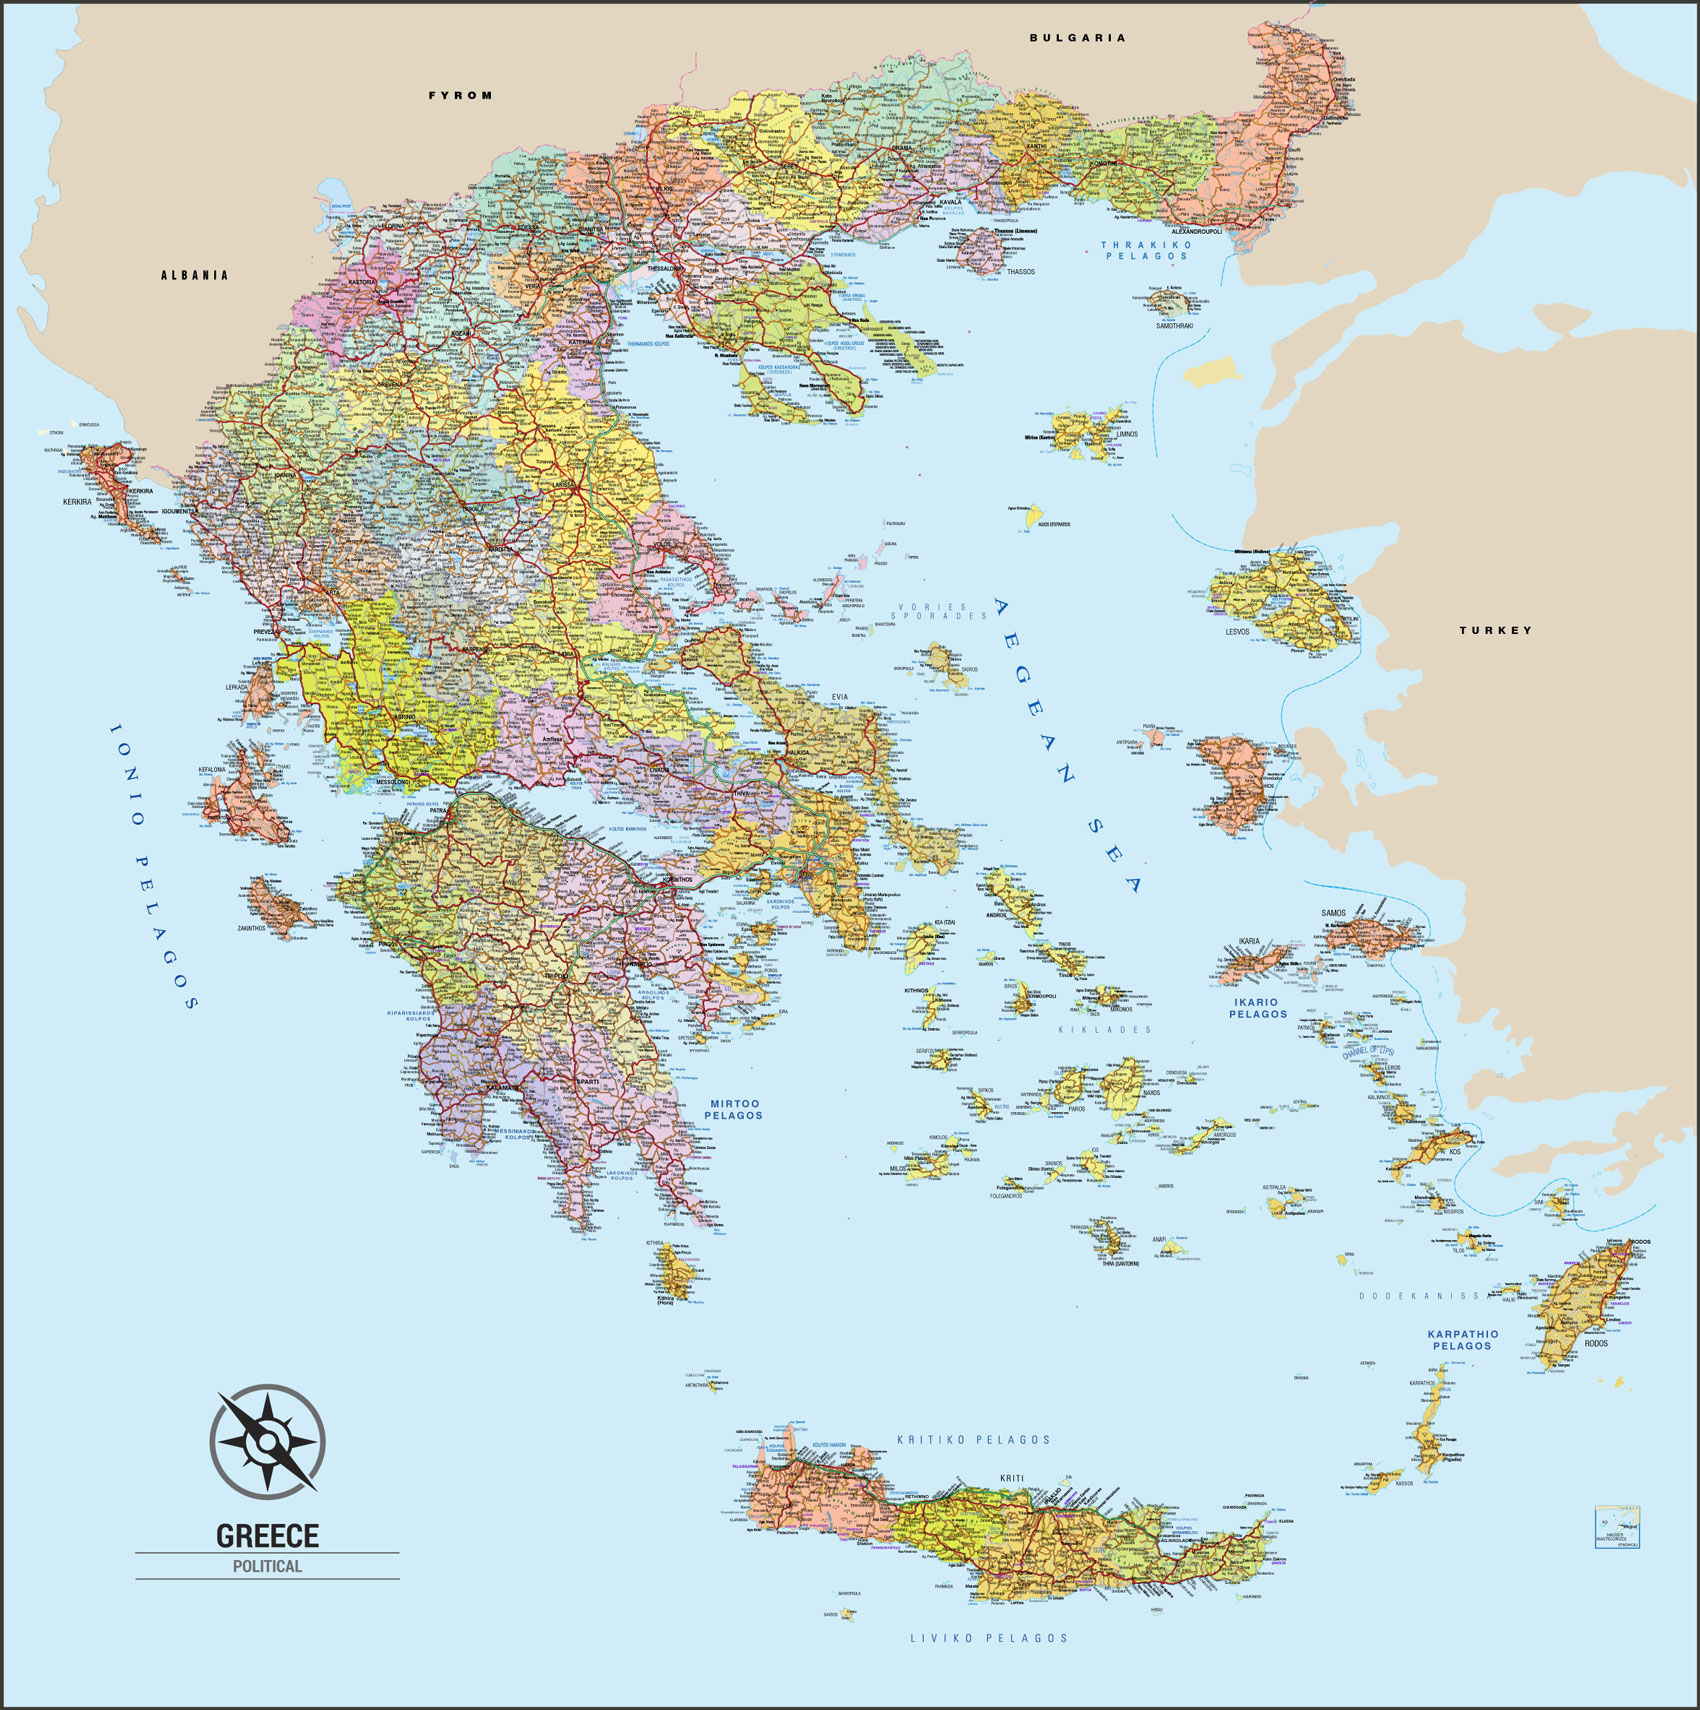 Greece Map Political English Xartes Toixoy